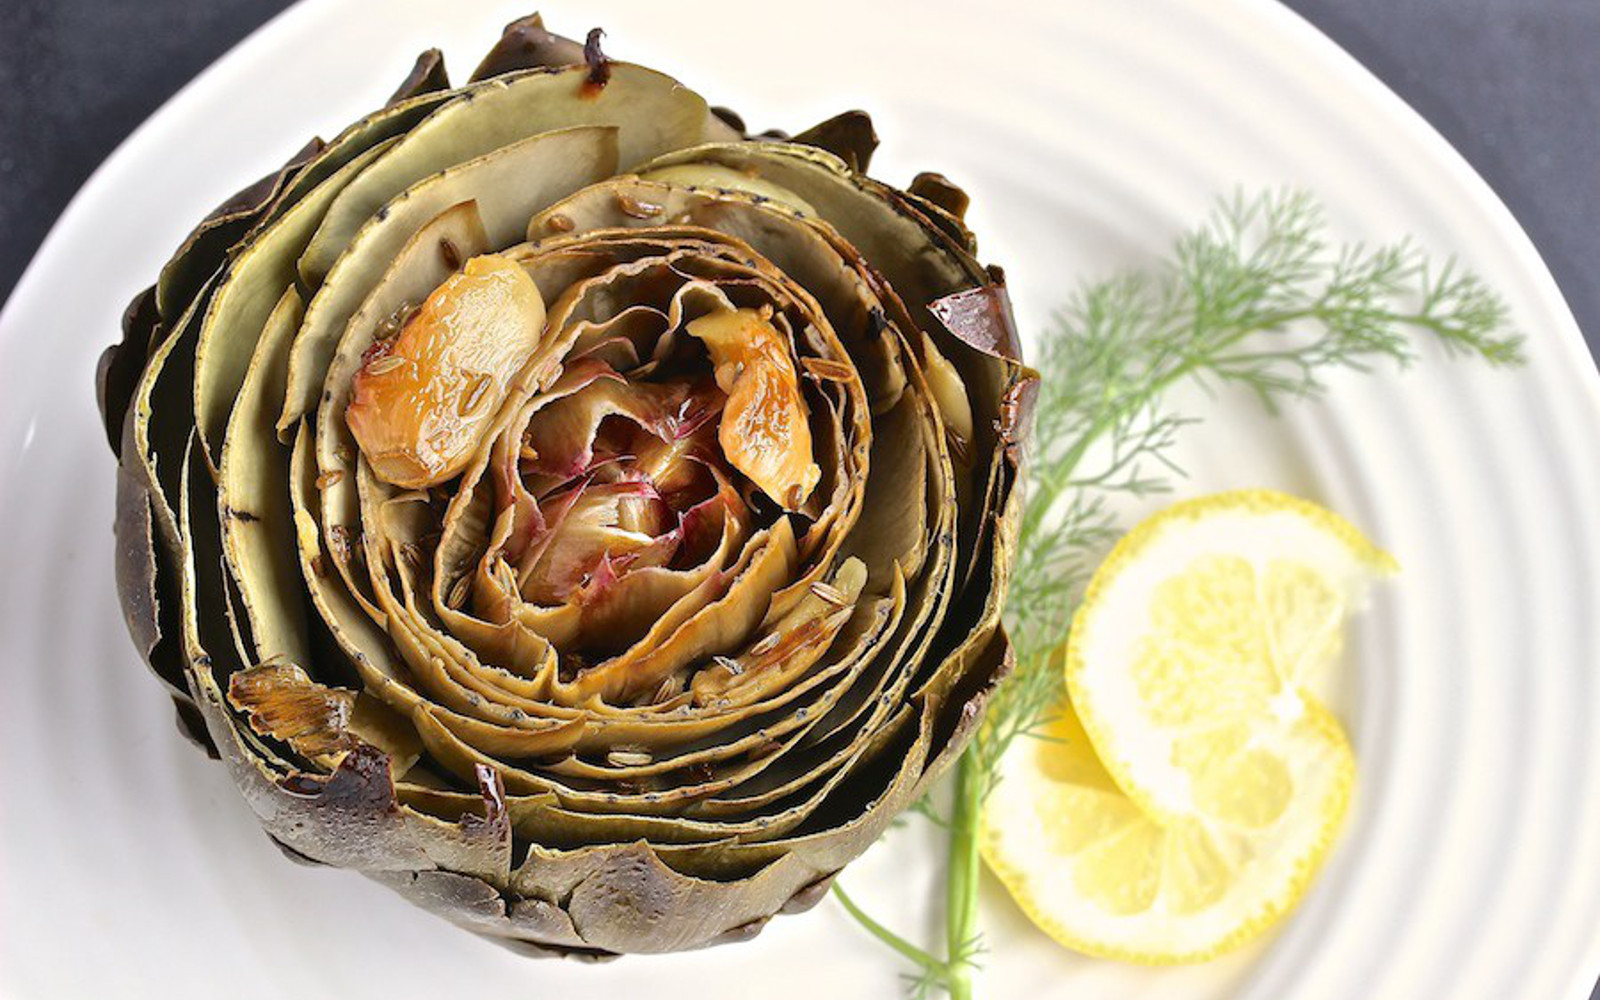 Lemon-Roasted Artichoke With Garlic and Fennel